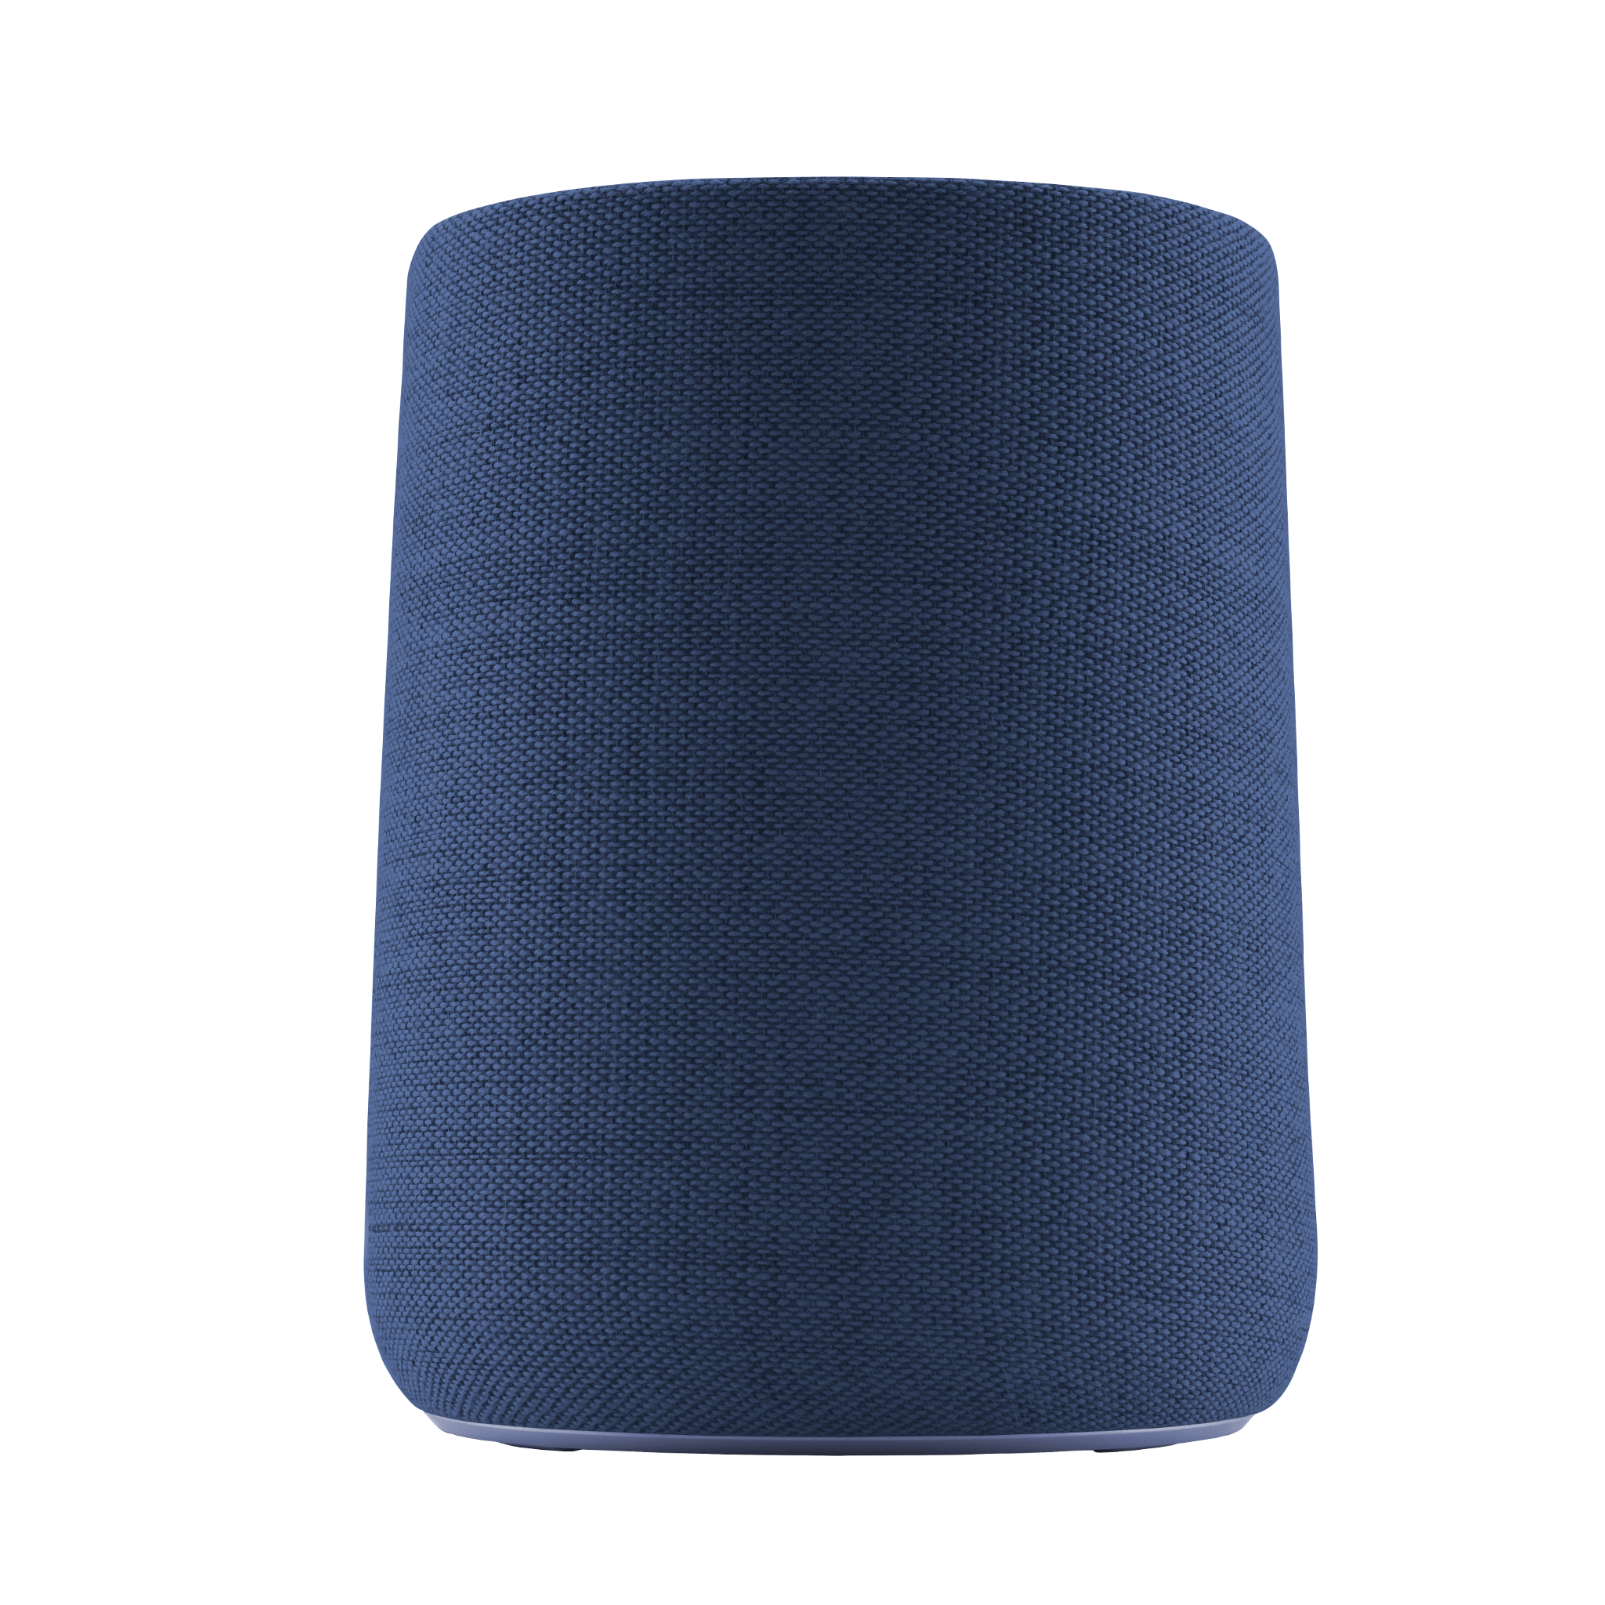 Harman Kardon Citation One MKII - Blue - All-in-one smart speaker with room-filling sound - Left